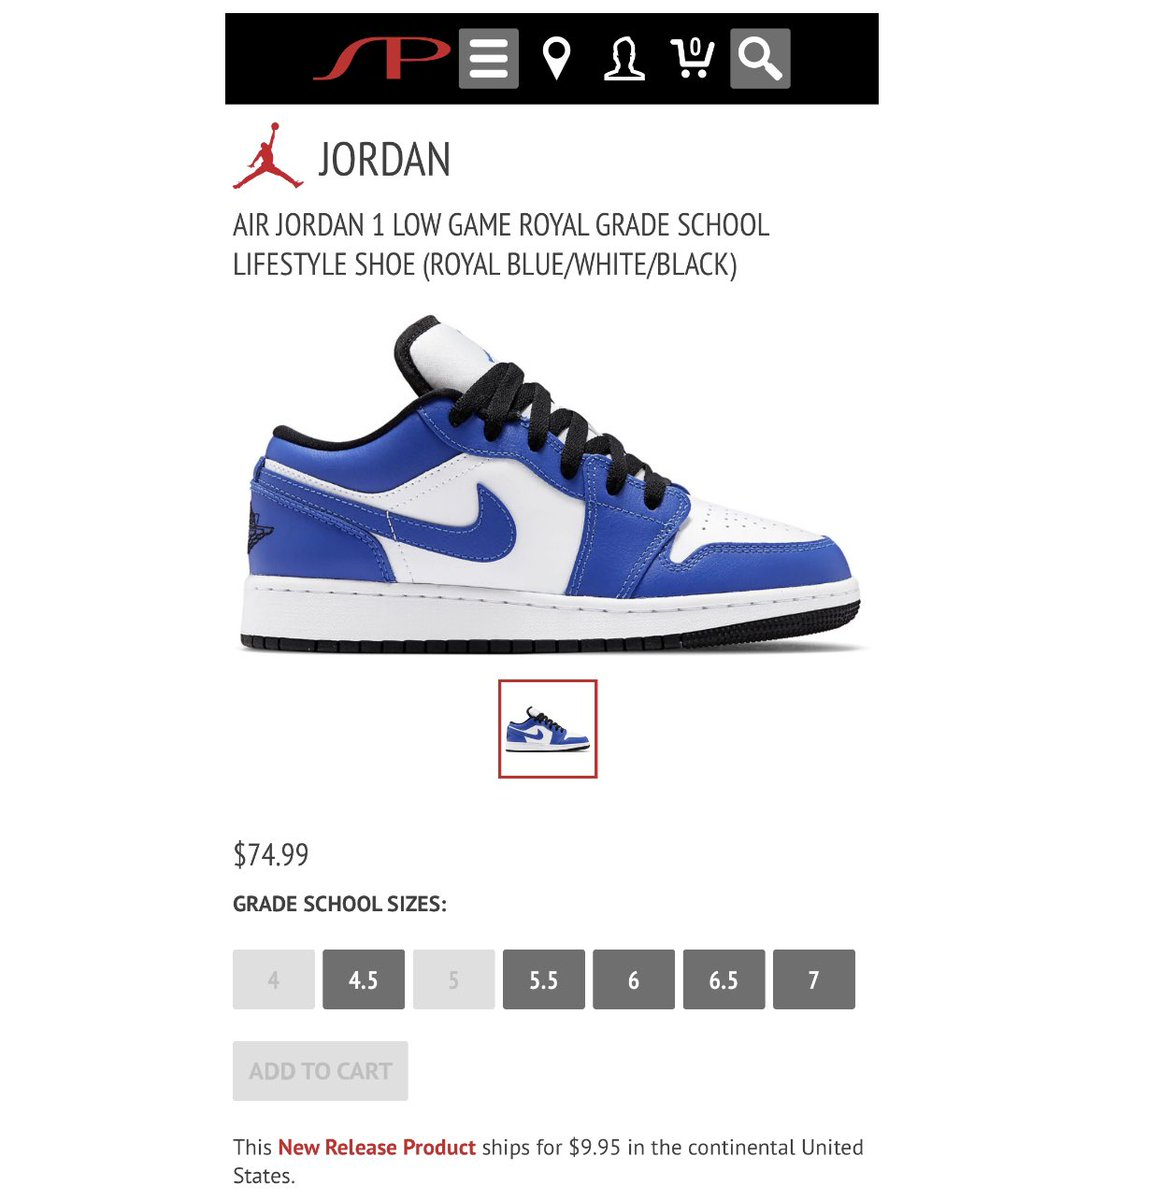 Snkr Twitr On Twitter Size Still Available Gs Jordan 1 Low Game Royal Https T Co Qvltghr6yo Ad